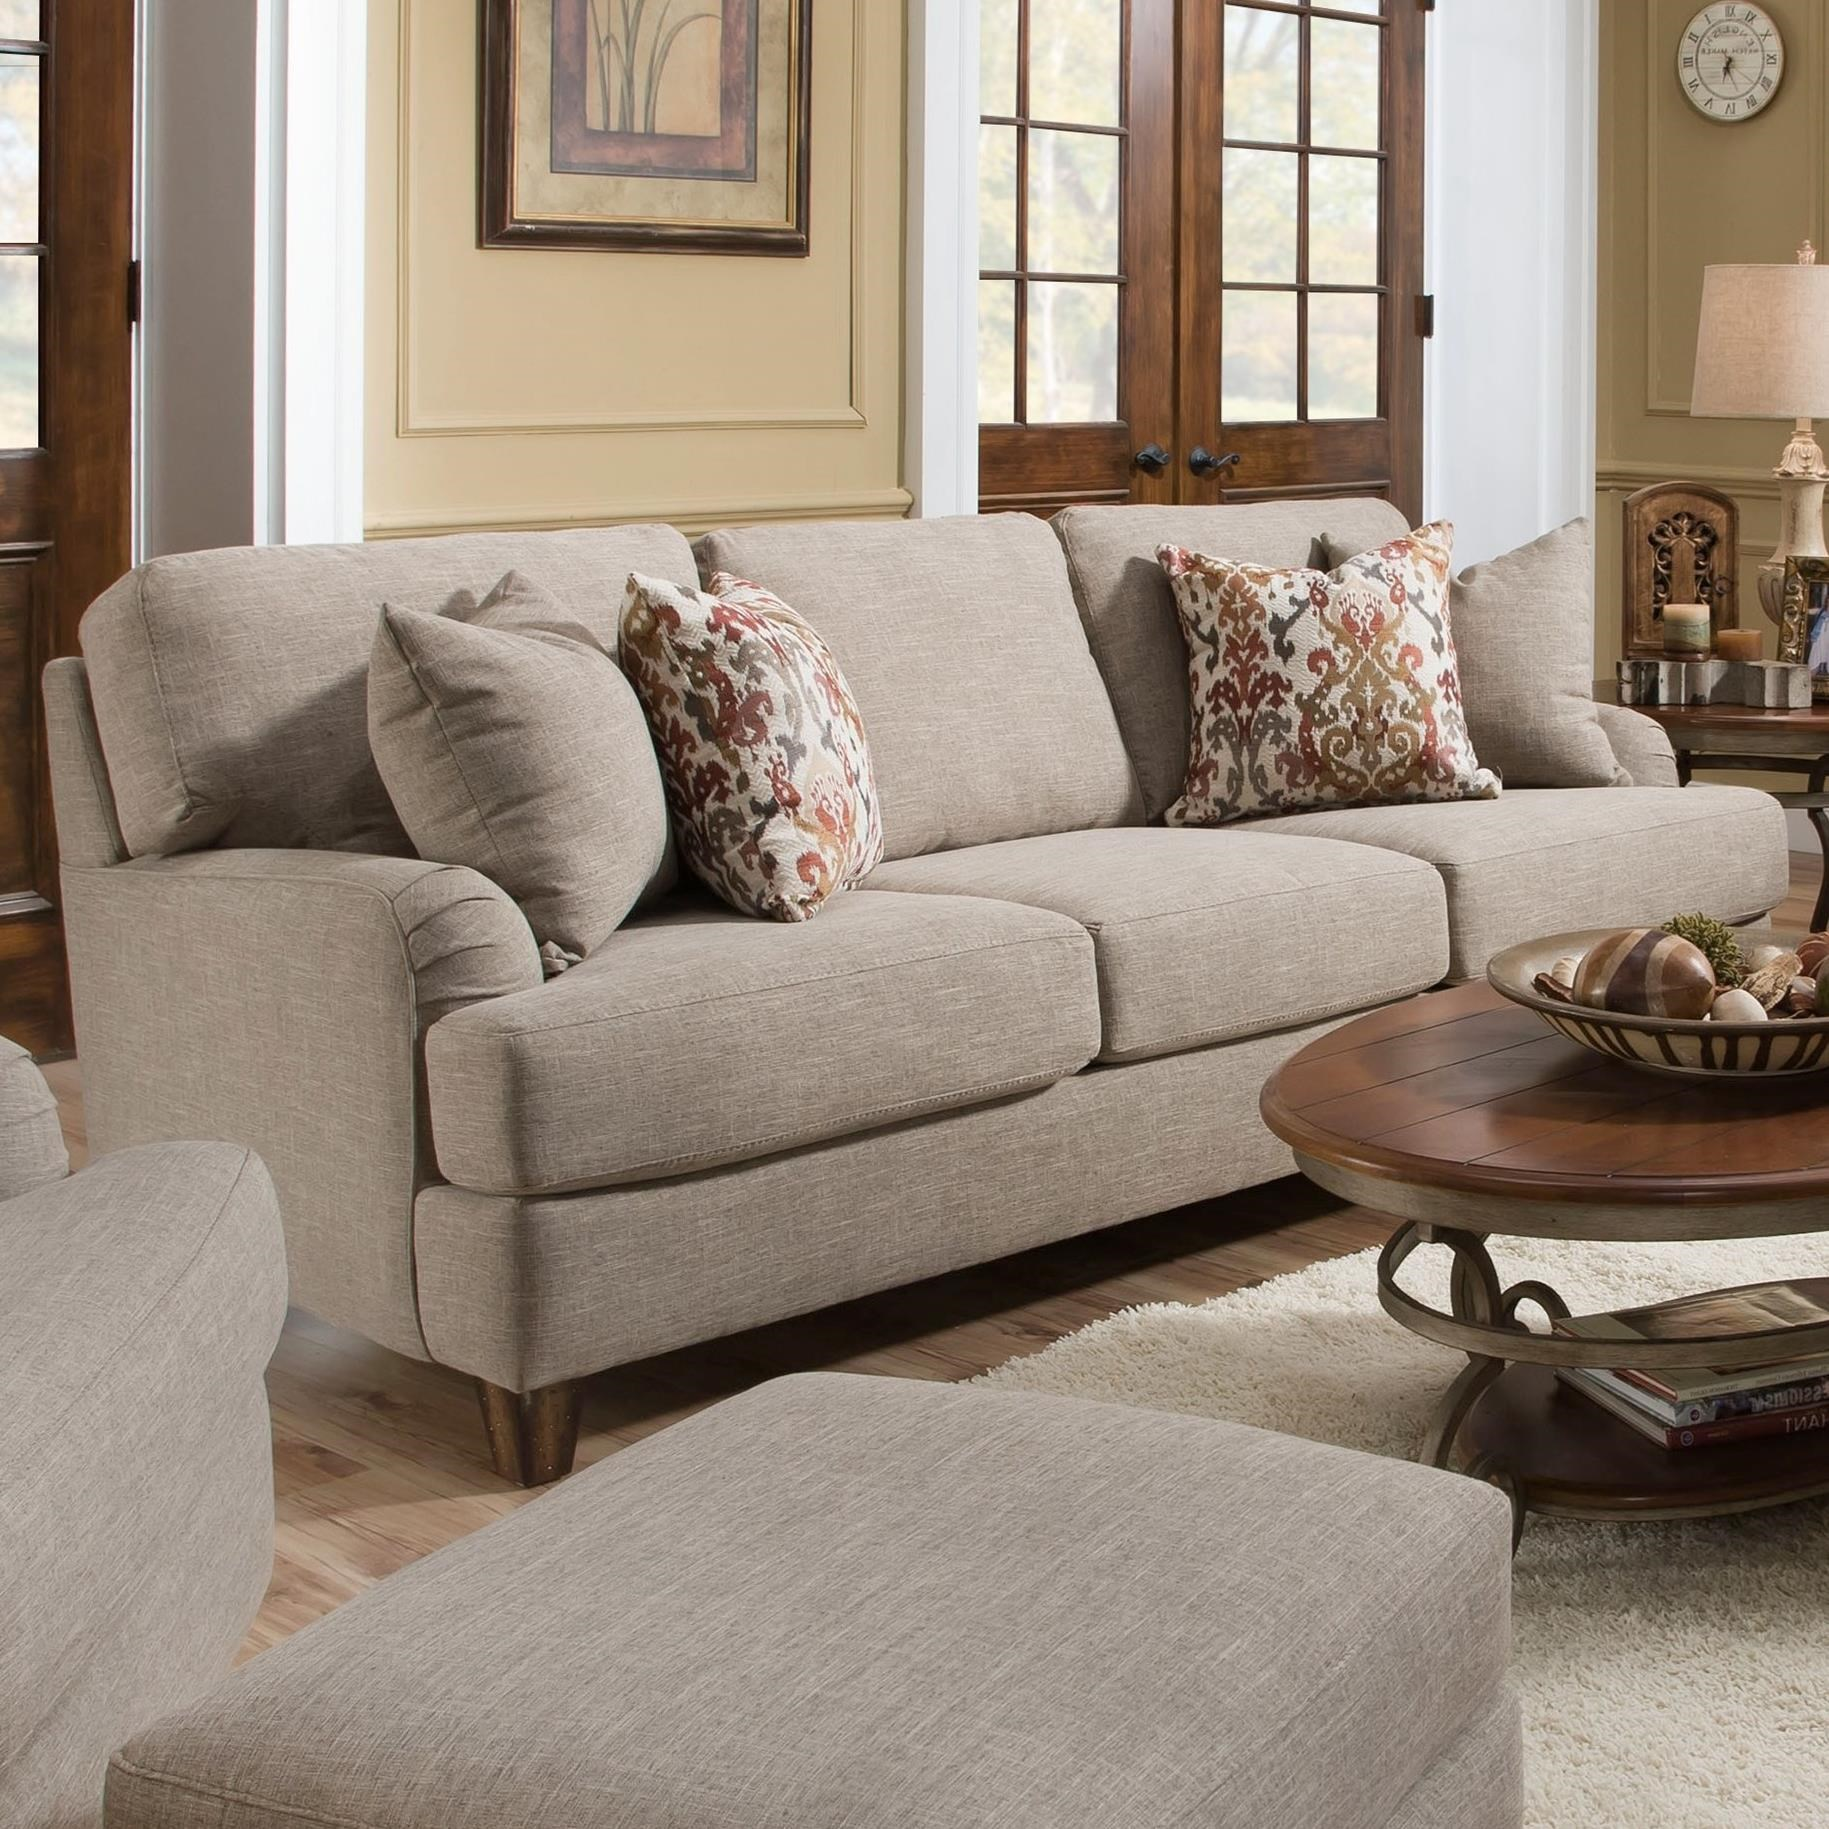 Carmel Sofa by Franklin at Furniture Superstore - Rochester, MN